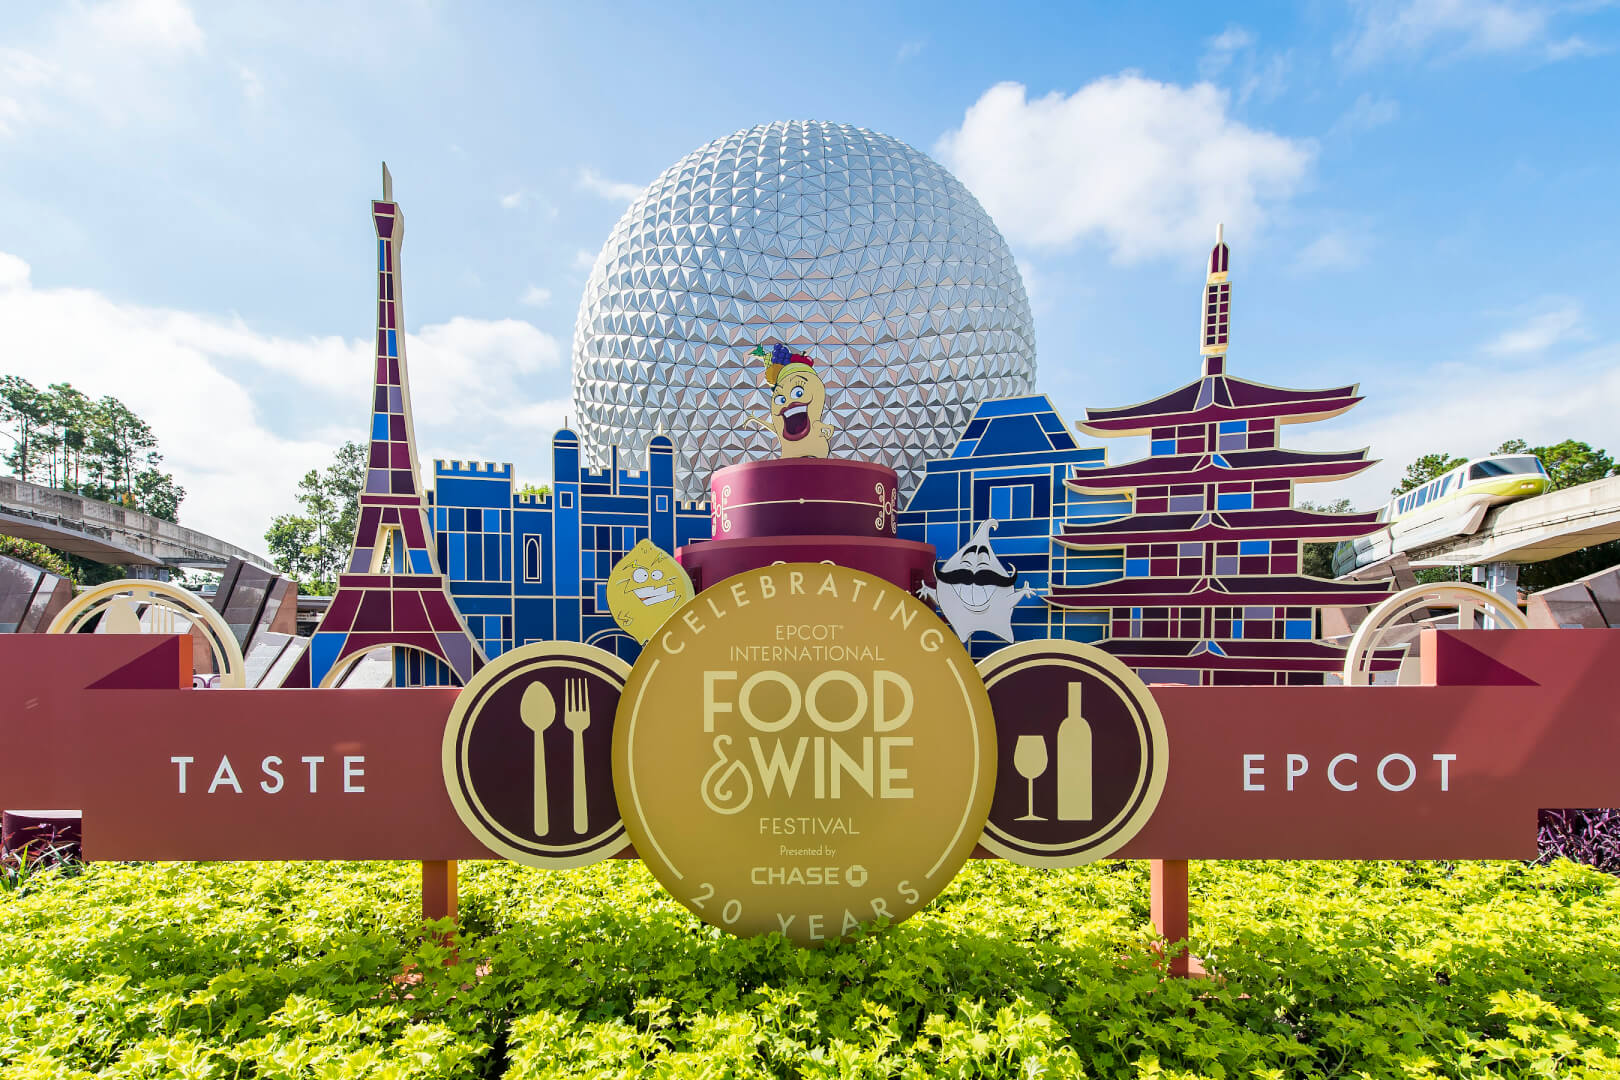 4 Tips for Ultimate Disney Food & Wine Festival Success